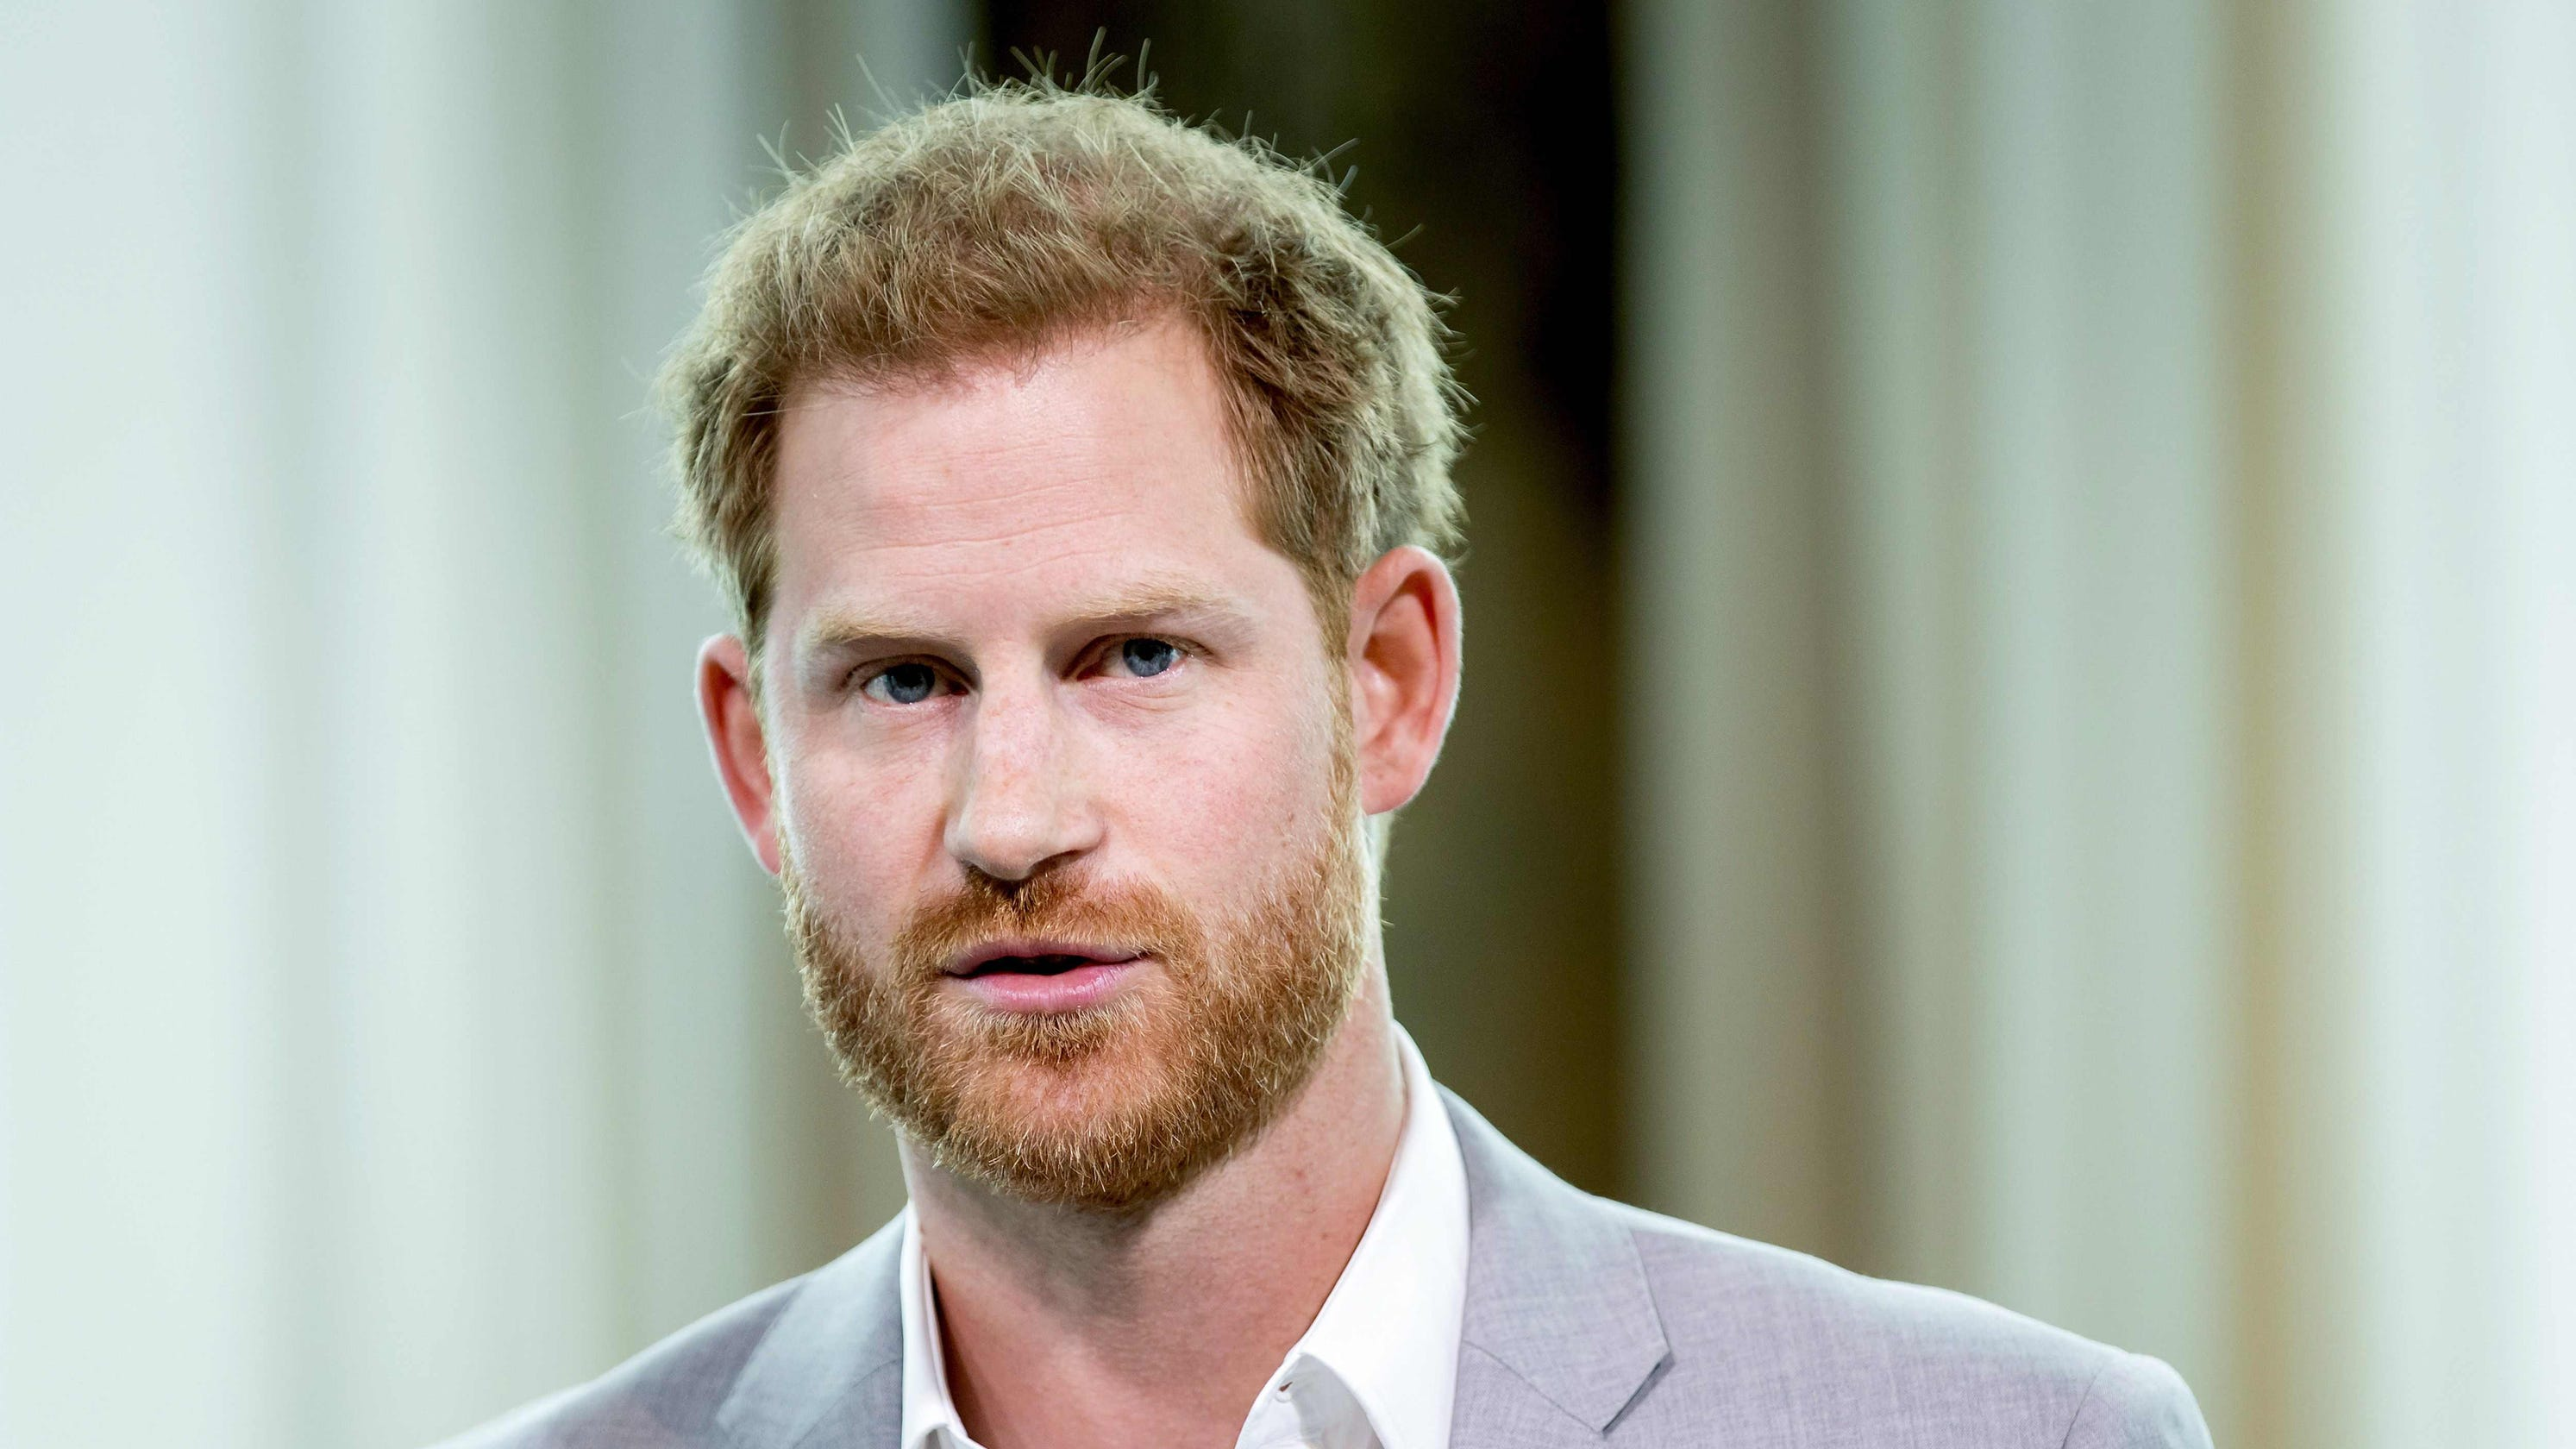 Prince Harry addresses private jet use after backlash: 'We can all do better'